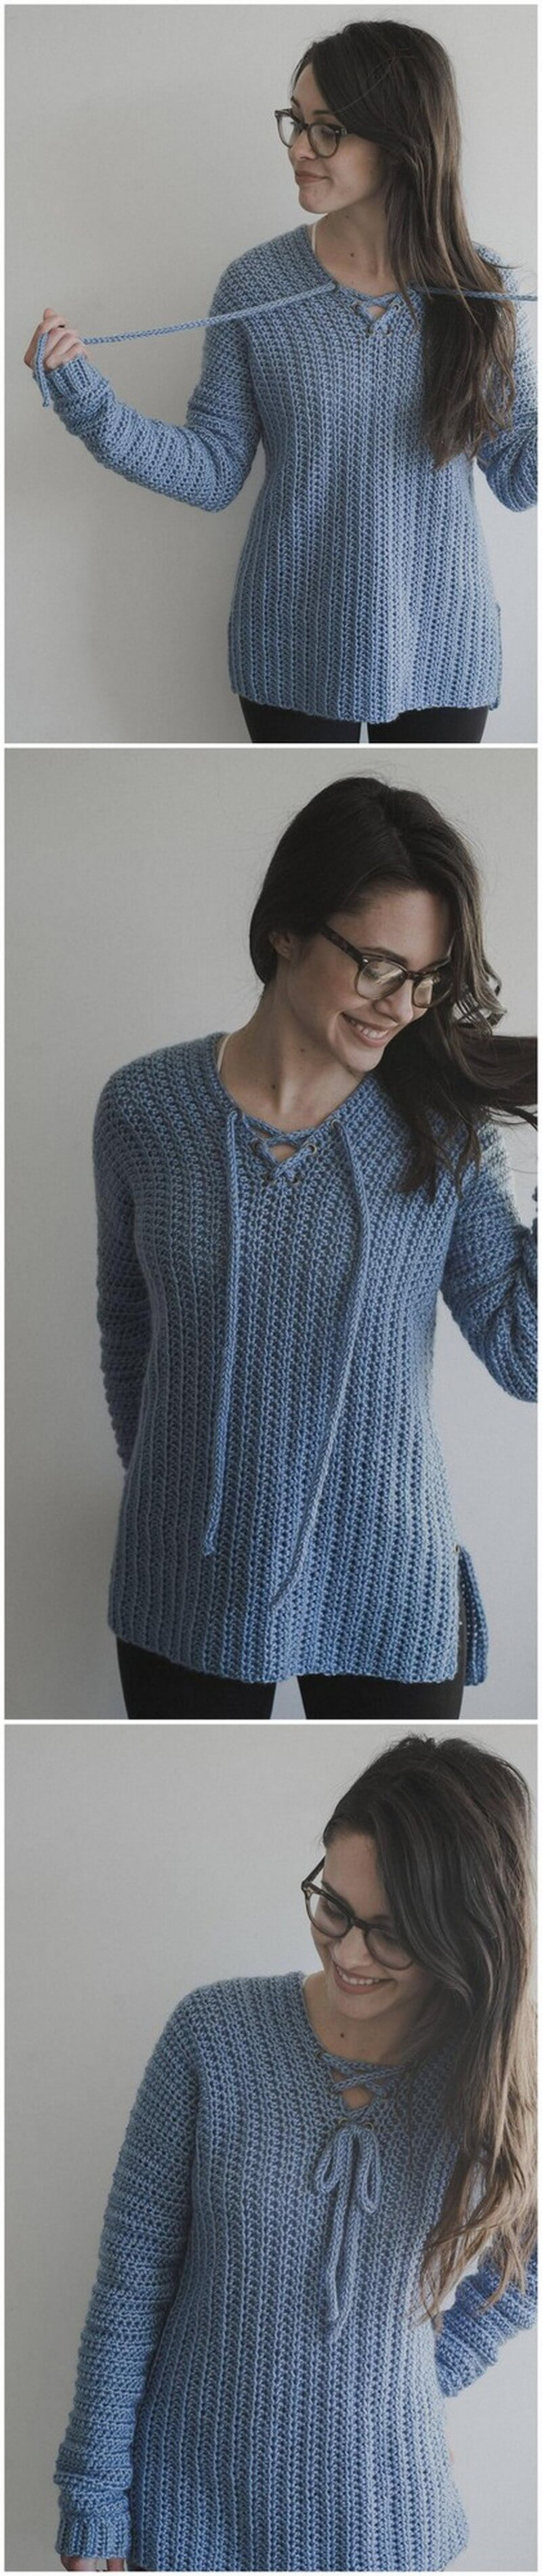 Crochet Sweater Pattern (53)